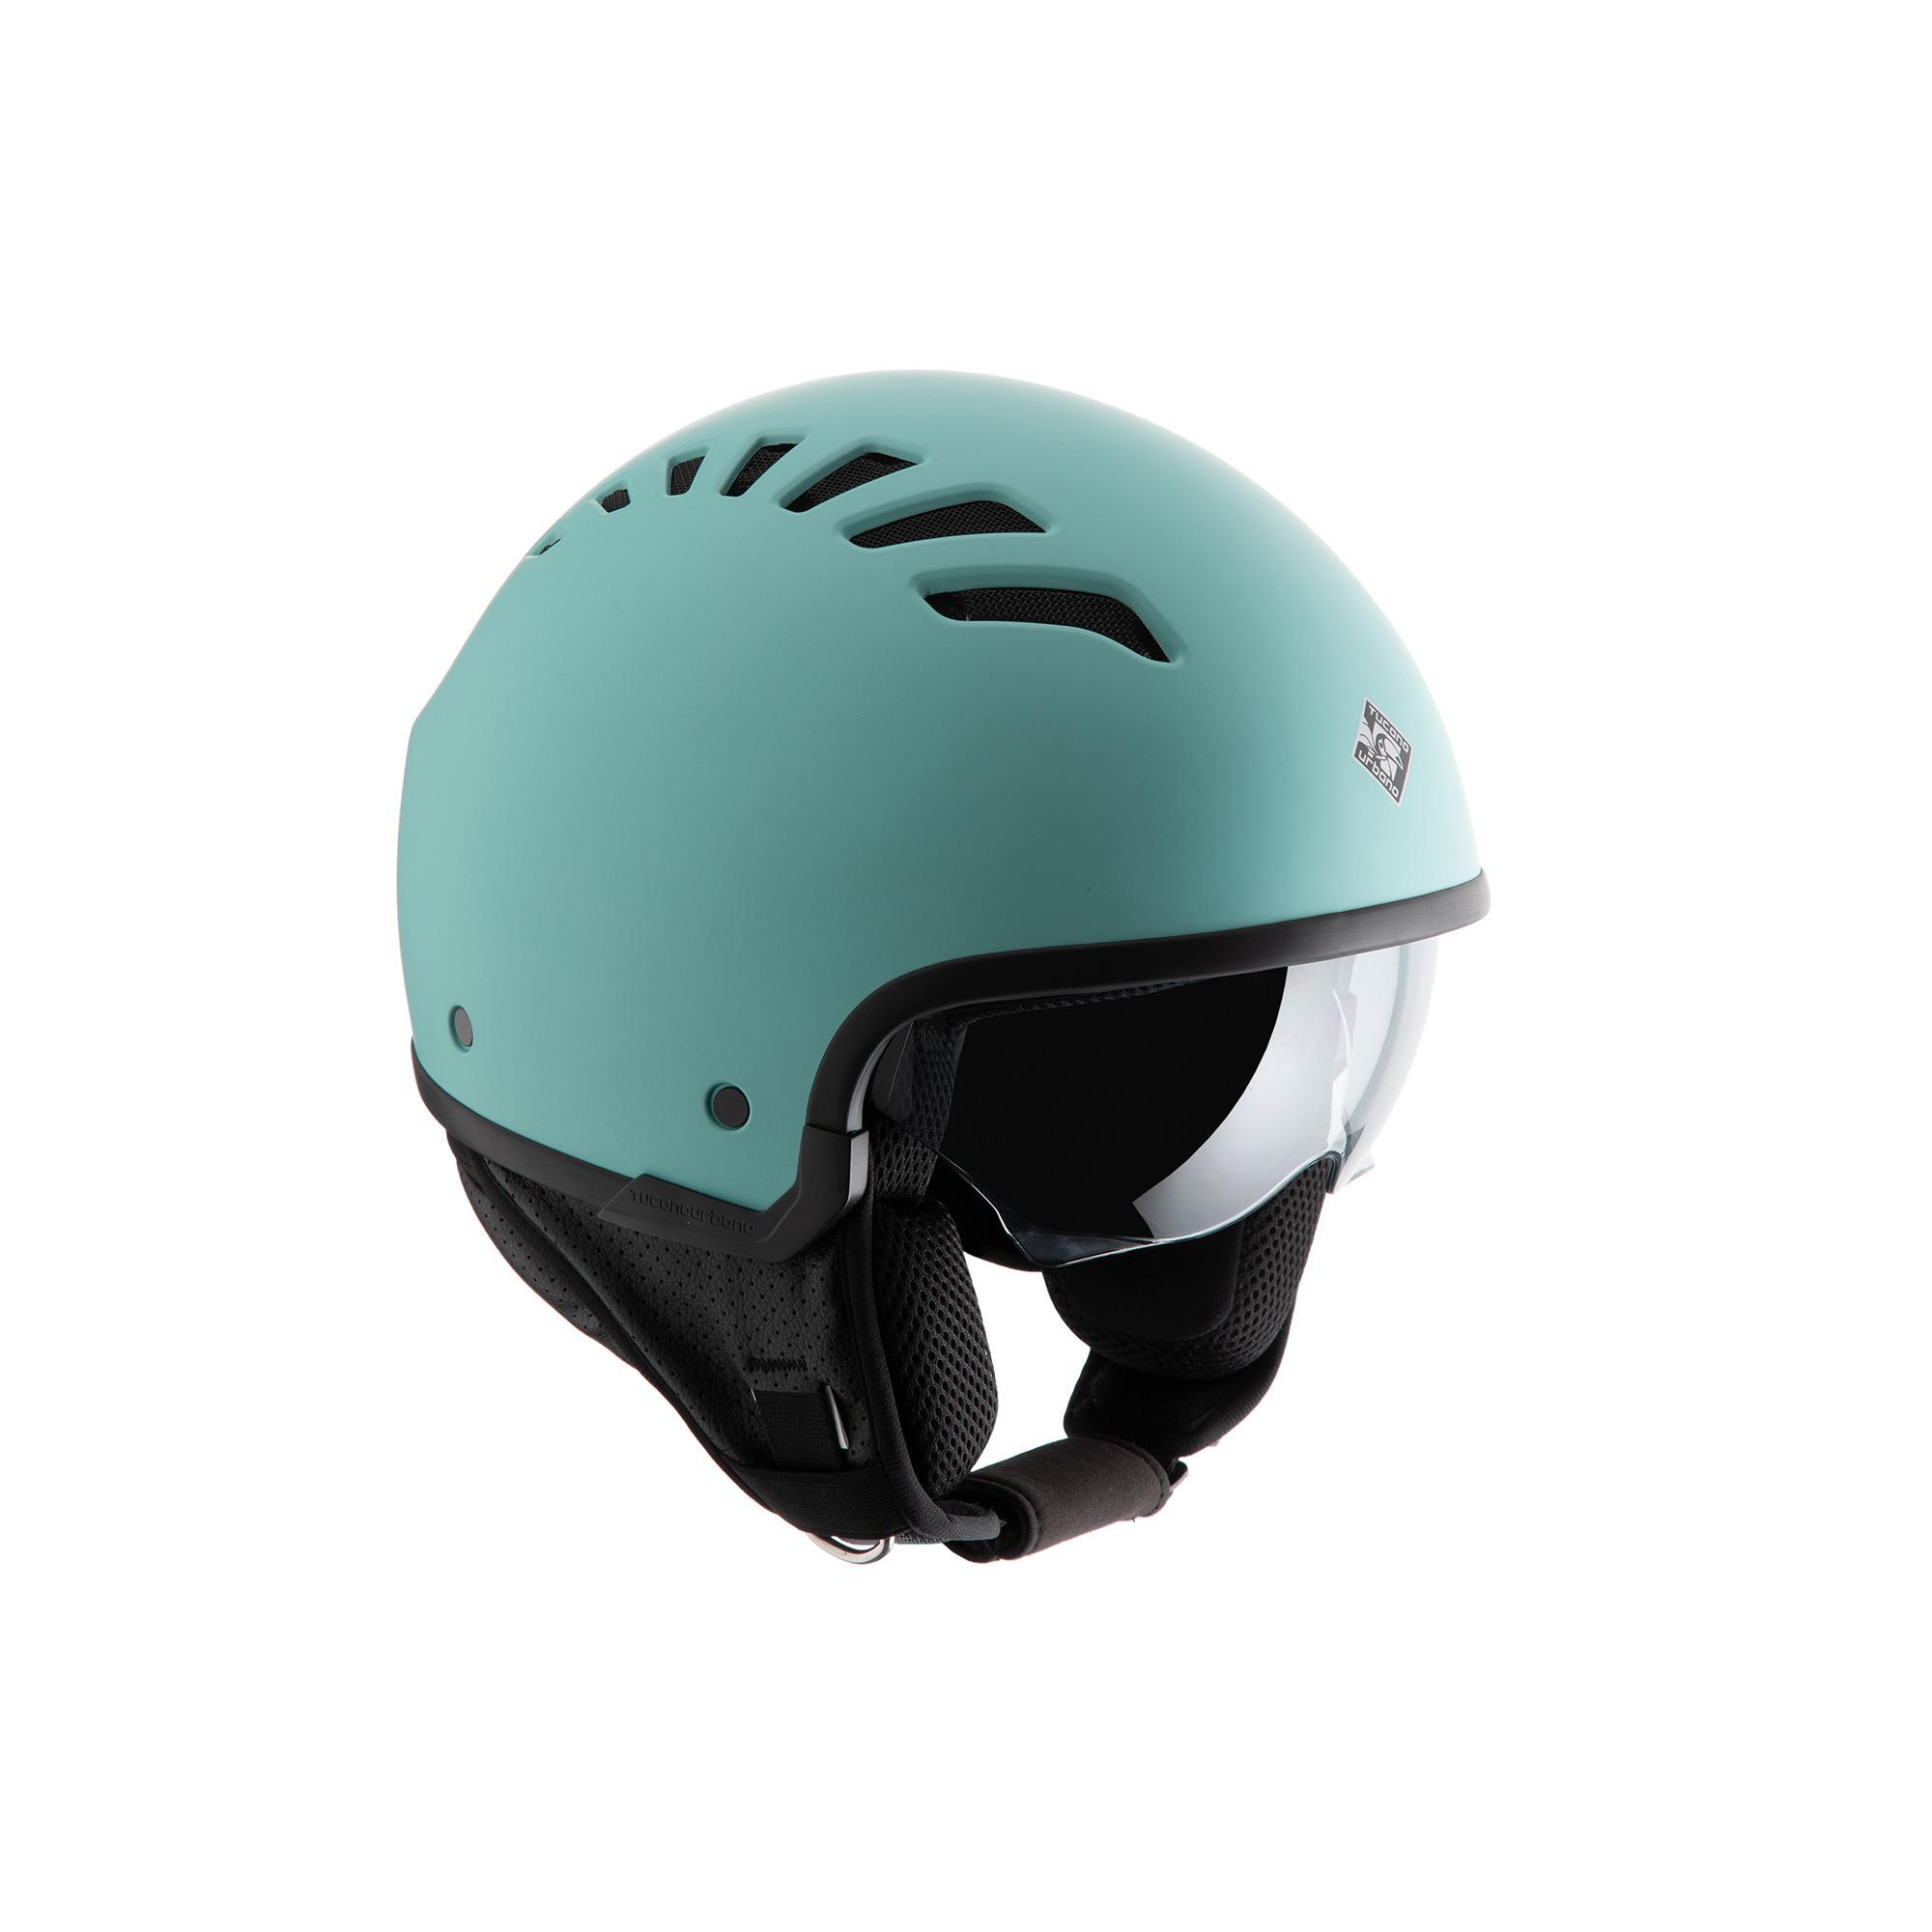 Casco Demi-jet El'fresh Tiffy Blu Opaco